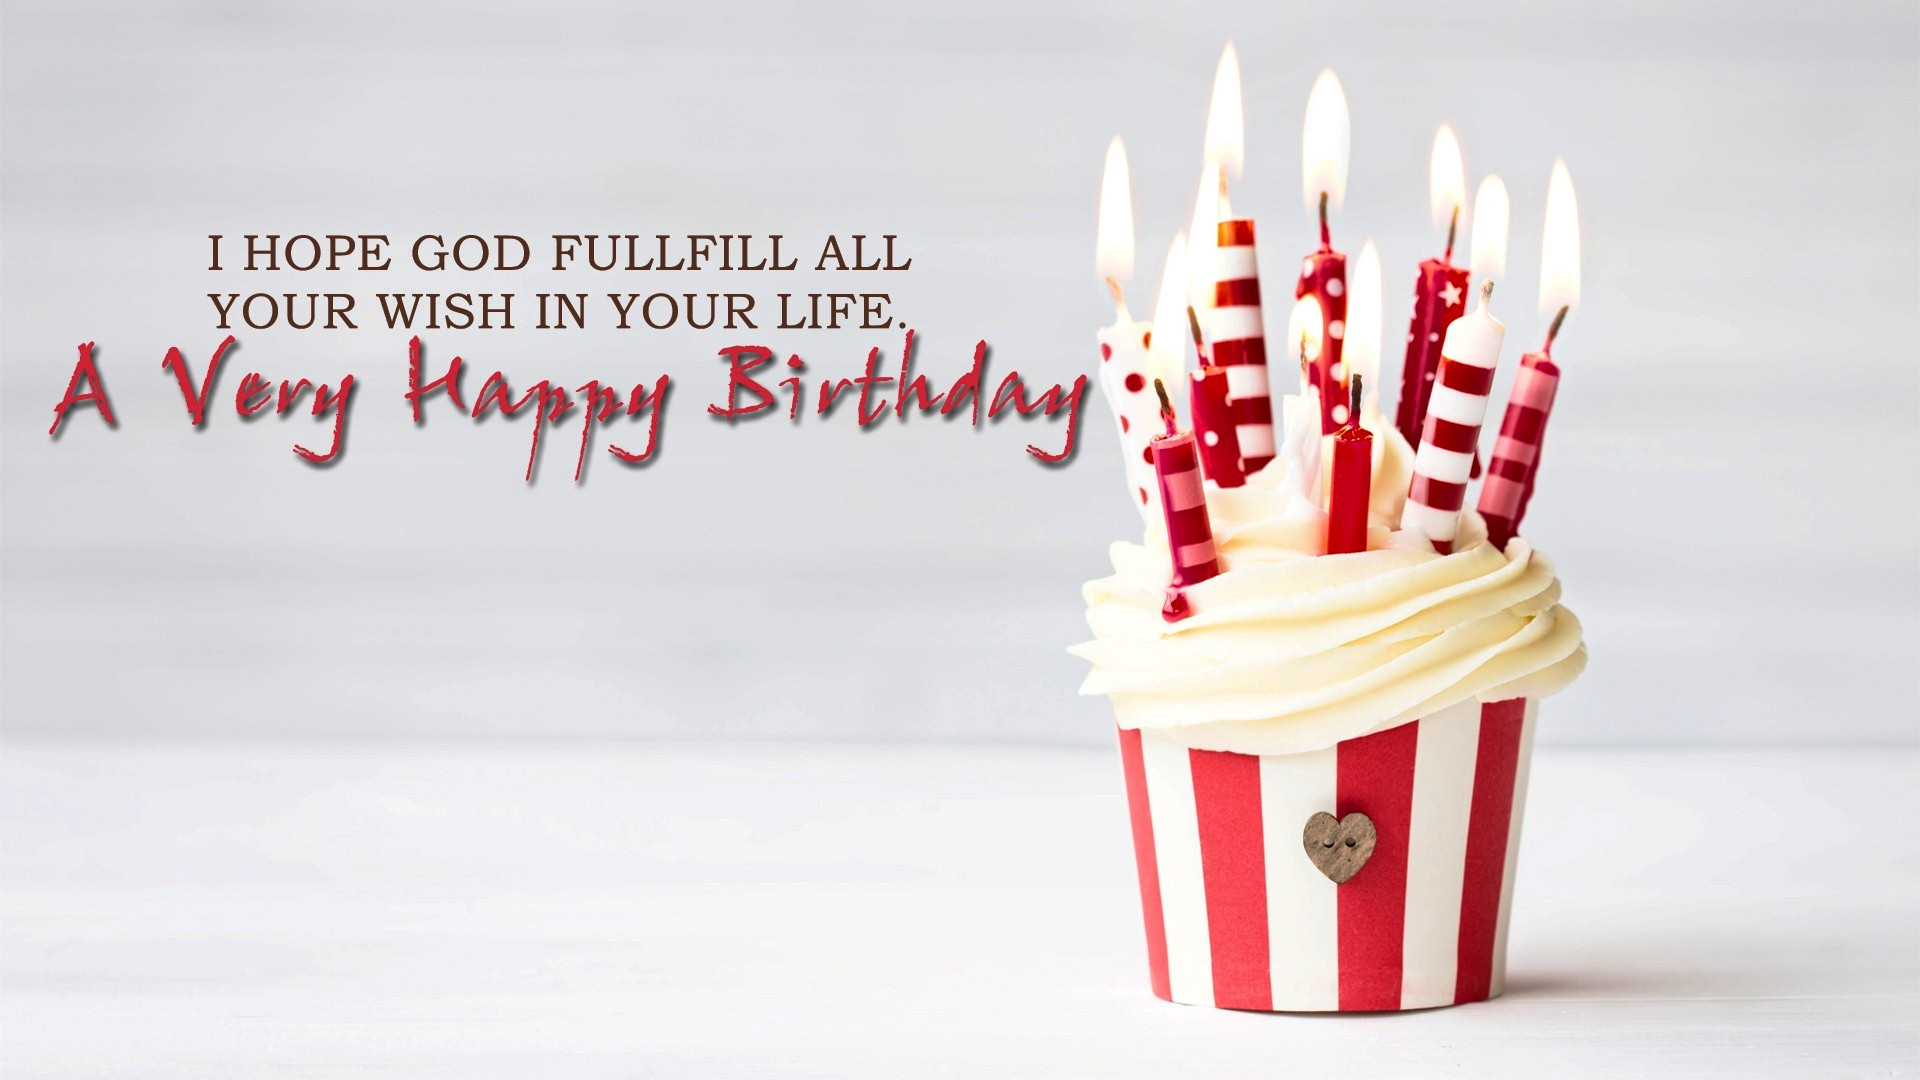 happy birthday images hd with quotes ; Happy-Birthday-Wishing-Quote-Greetings-HD-Wallpapers-15224455